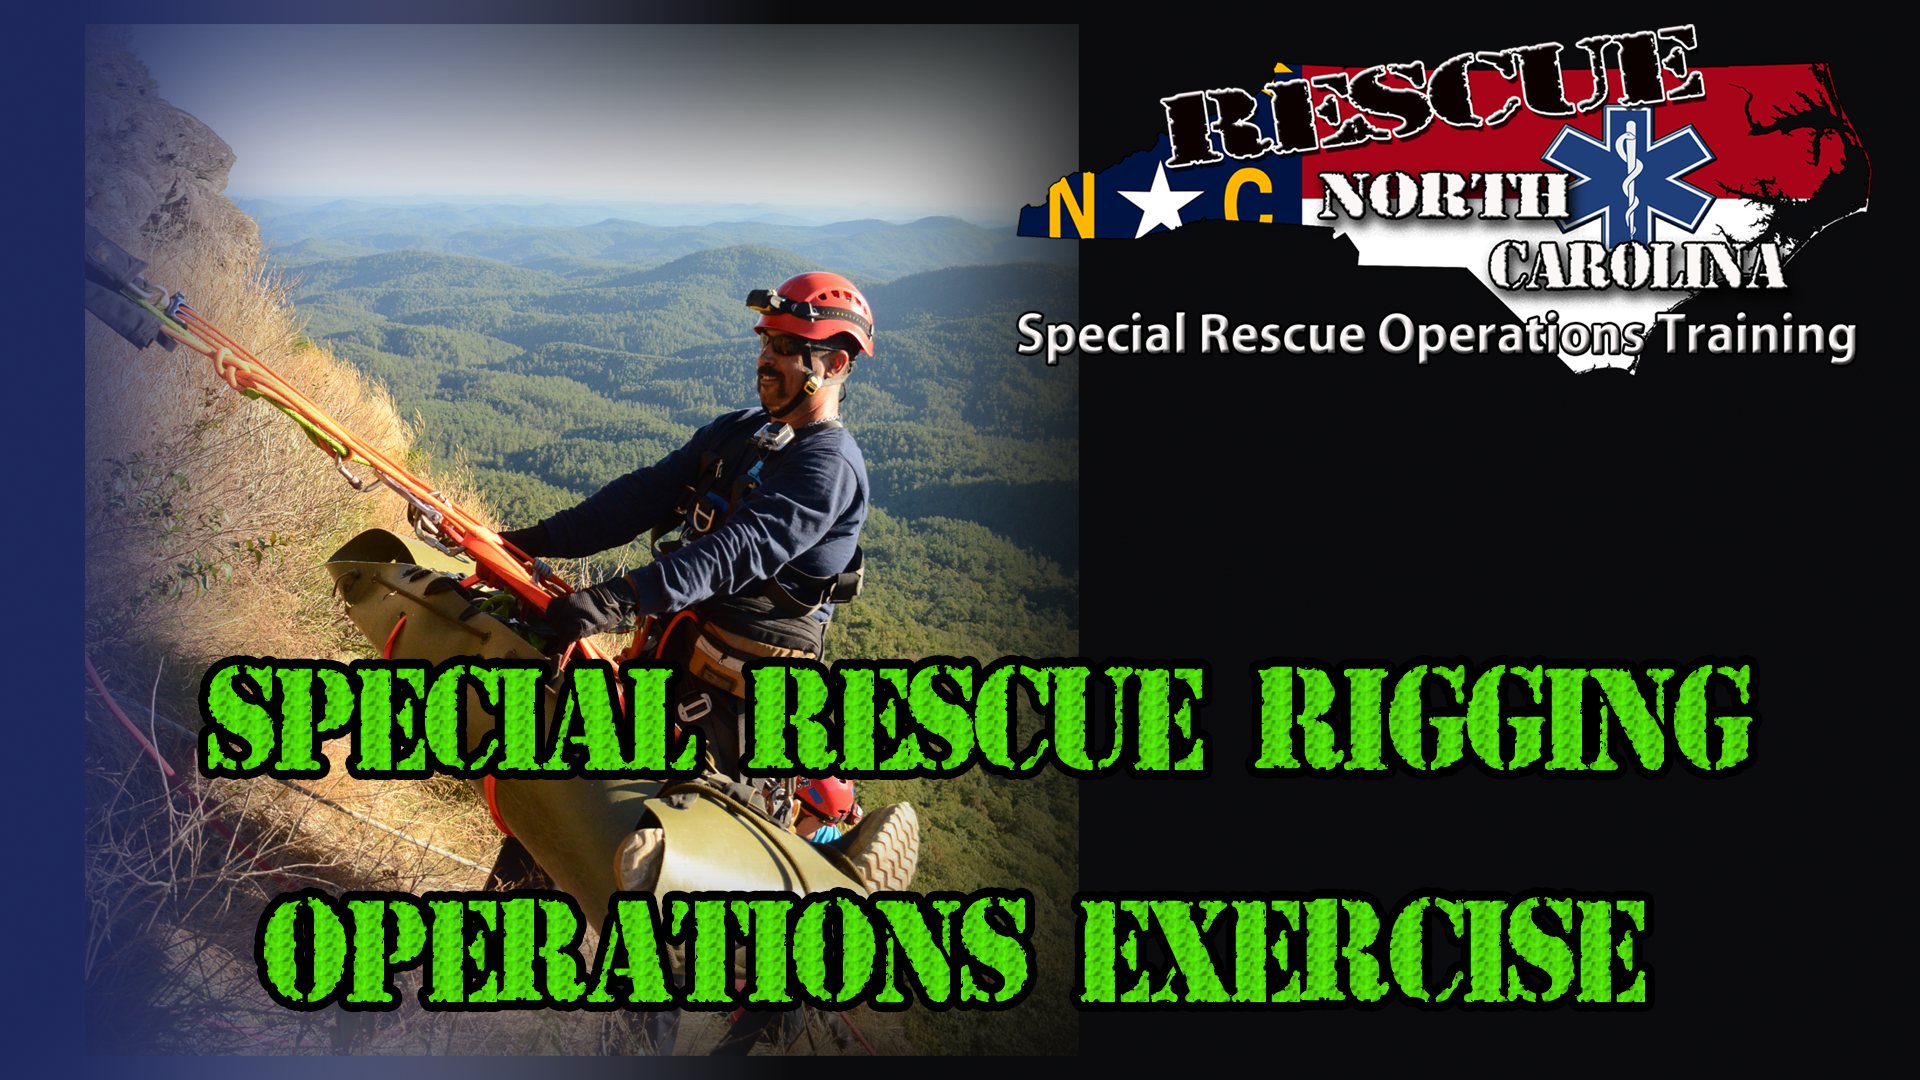 2019 Special Rigging Exercise